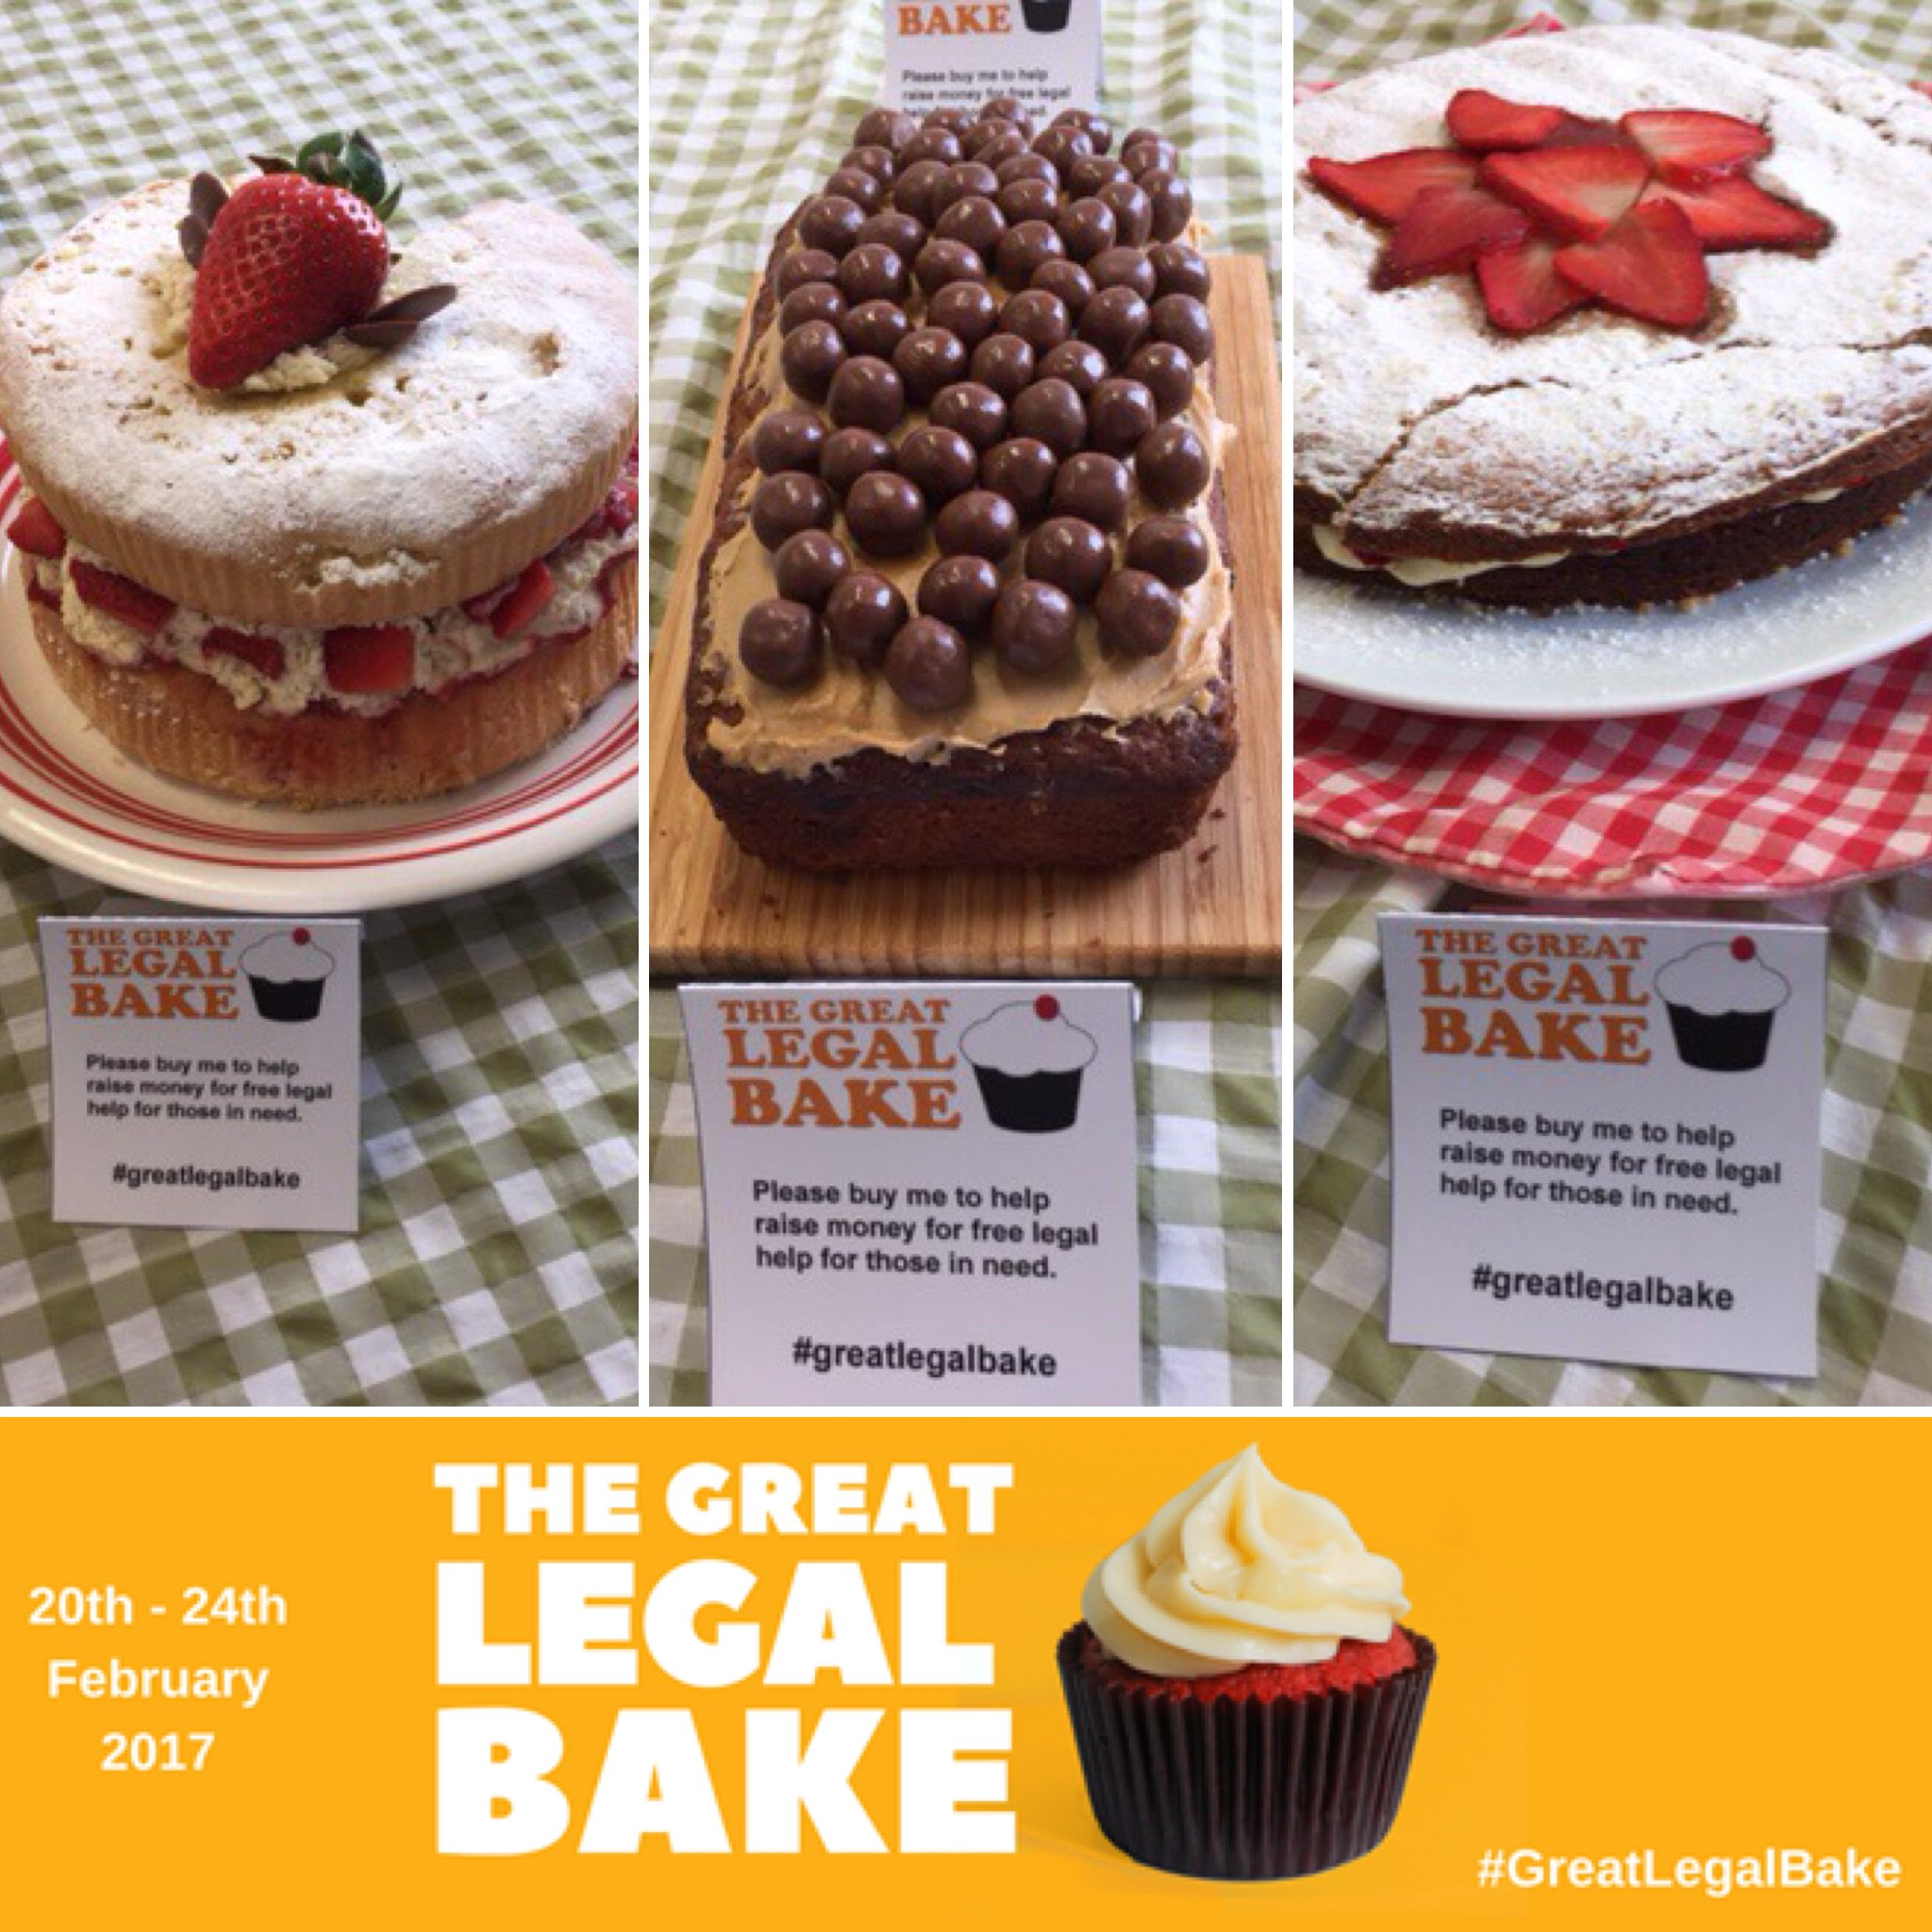 Monday was a successful #baking day for Acuity Legal! An amazing start of #GreatLegalBake week! Check out some of the #cakes from yesterday! https://t.co/an5nr1e6gH